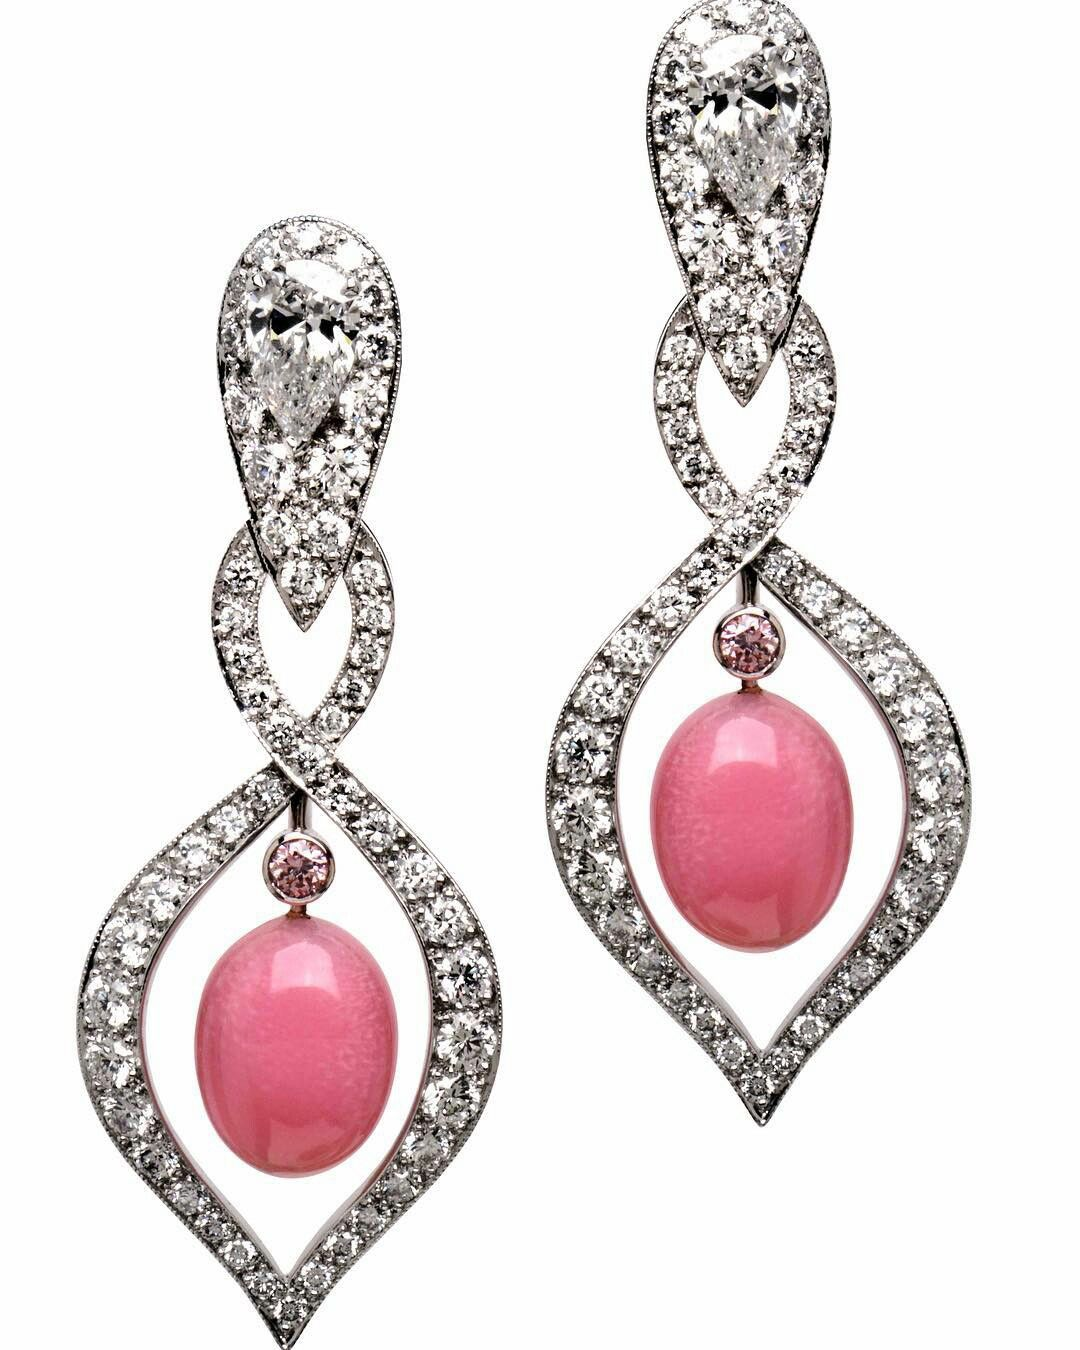 Conch pearl and diamond earrings, by Manalys